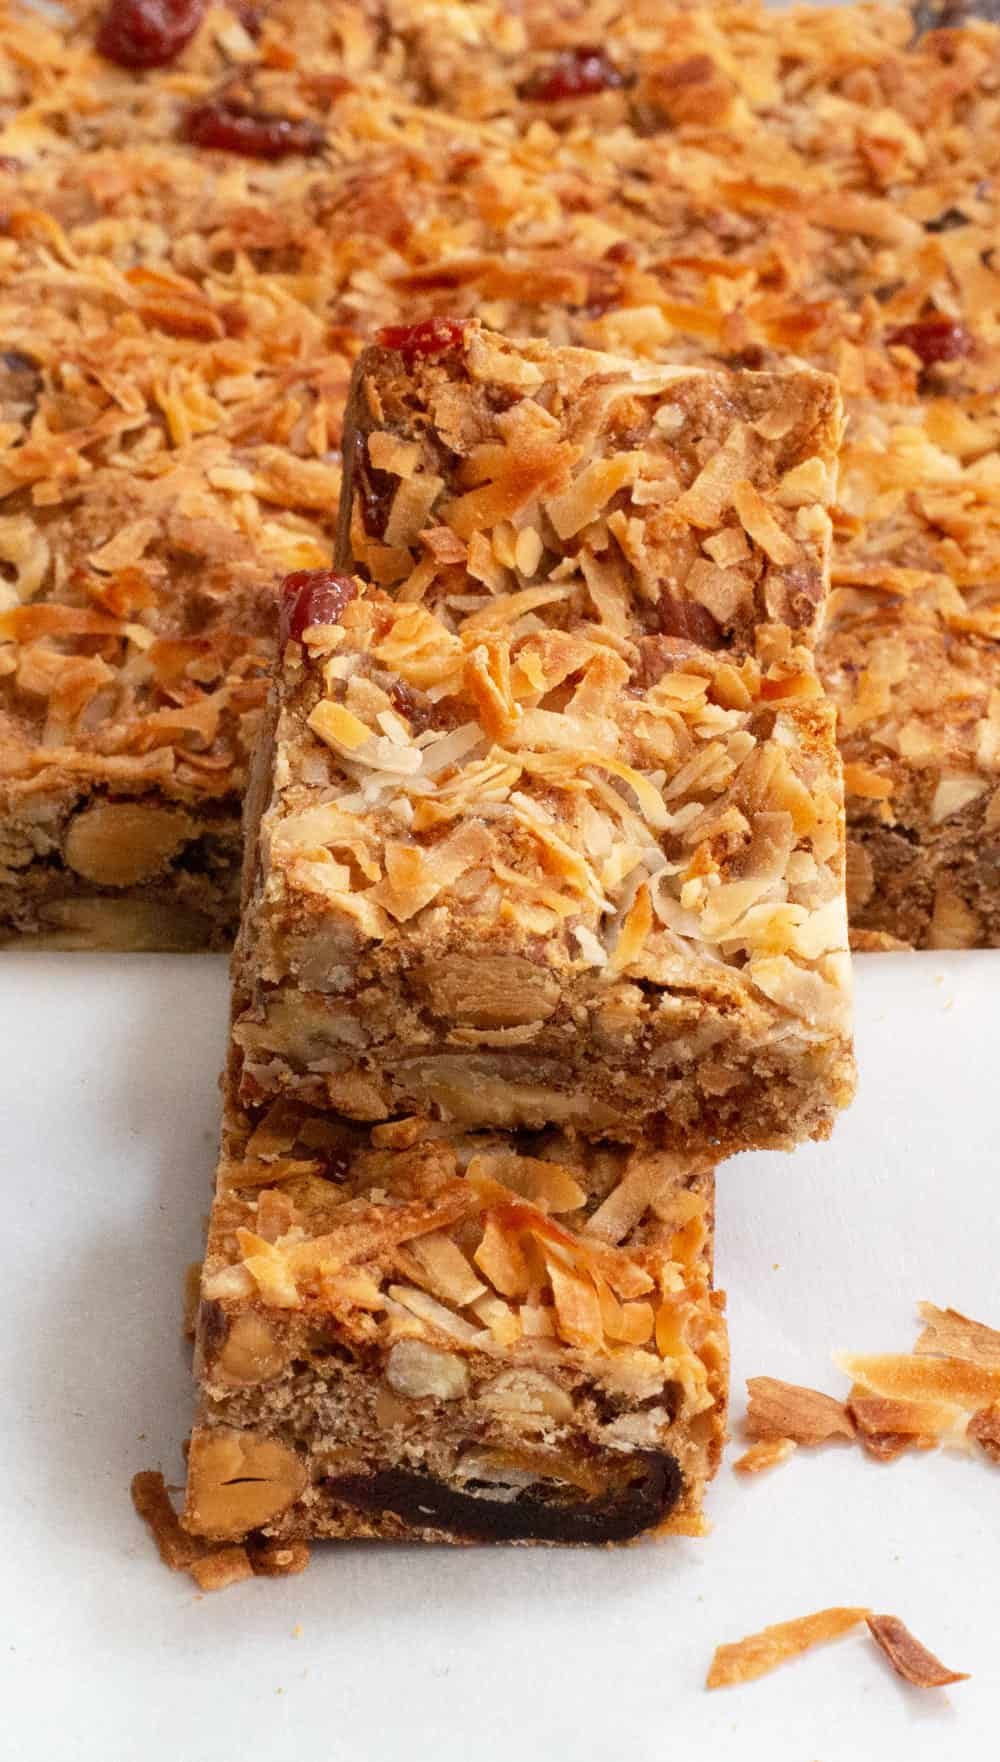 coconut-topped dried fruit & nut bars stacked with rest of batch behind